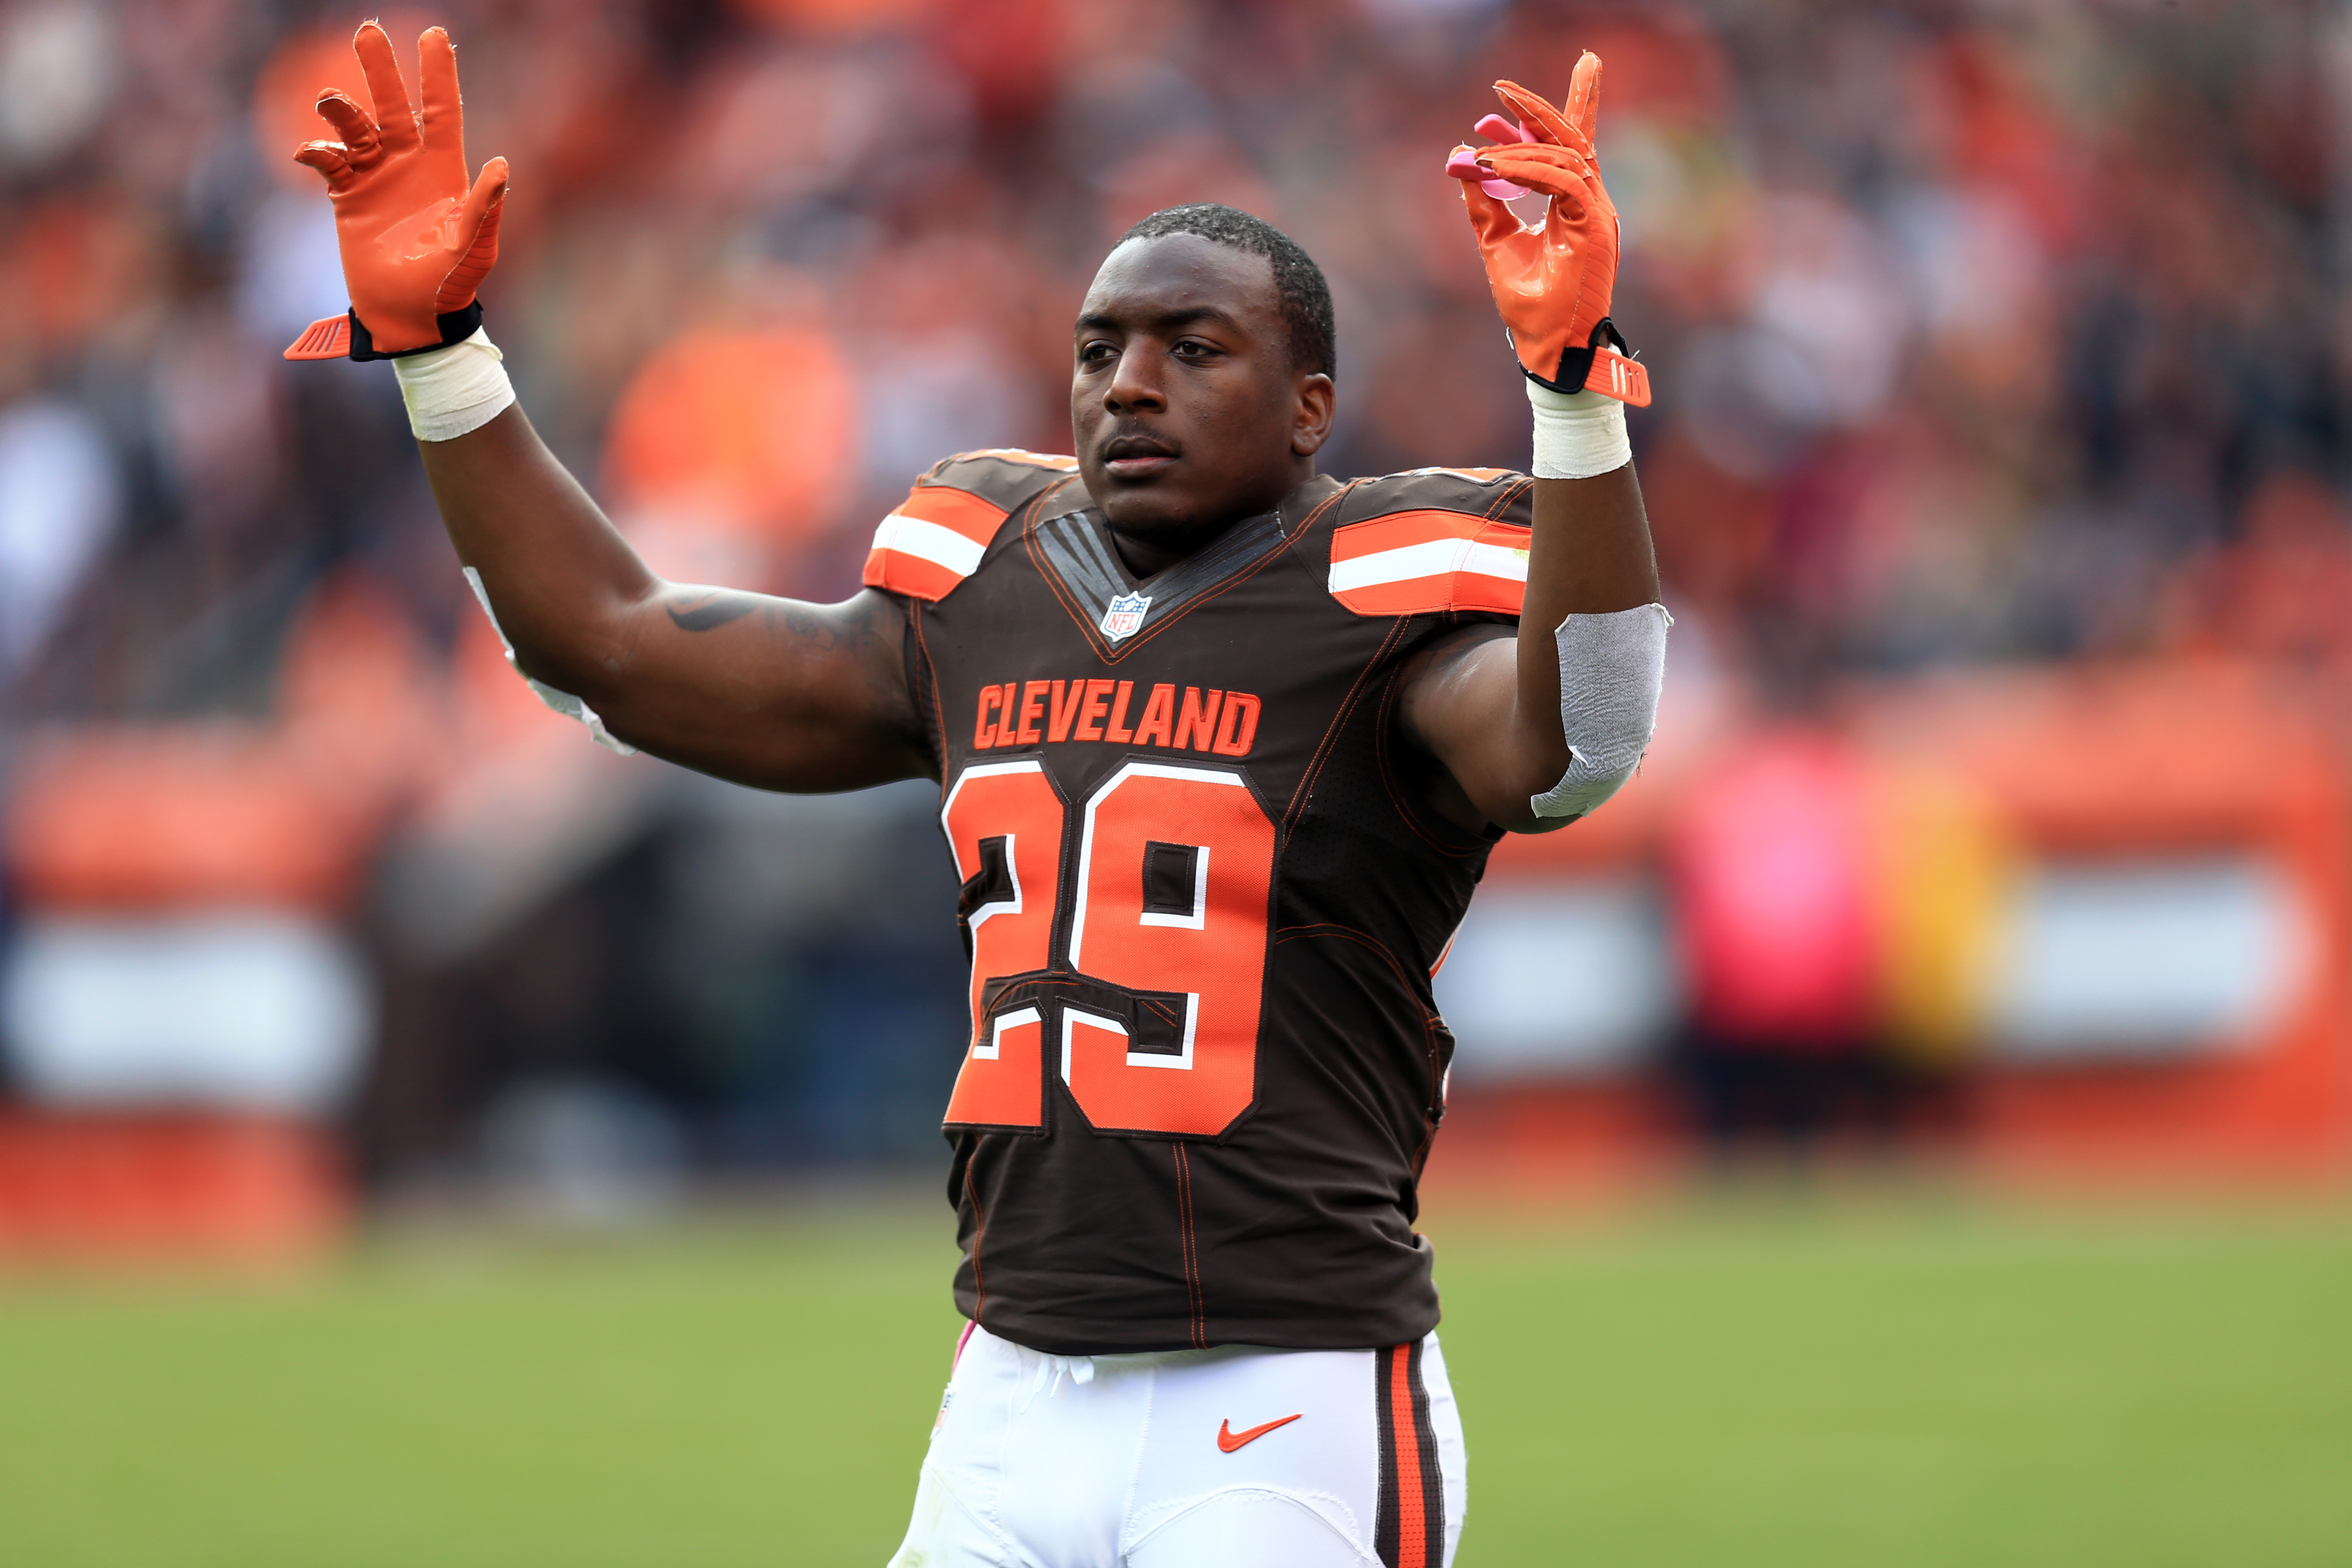 Duke Johnson's days with the Cleveland Browns 'have been numbered'